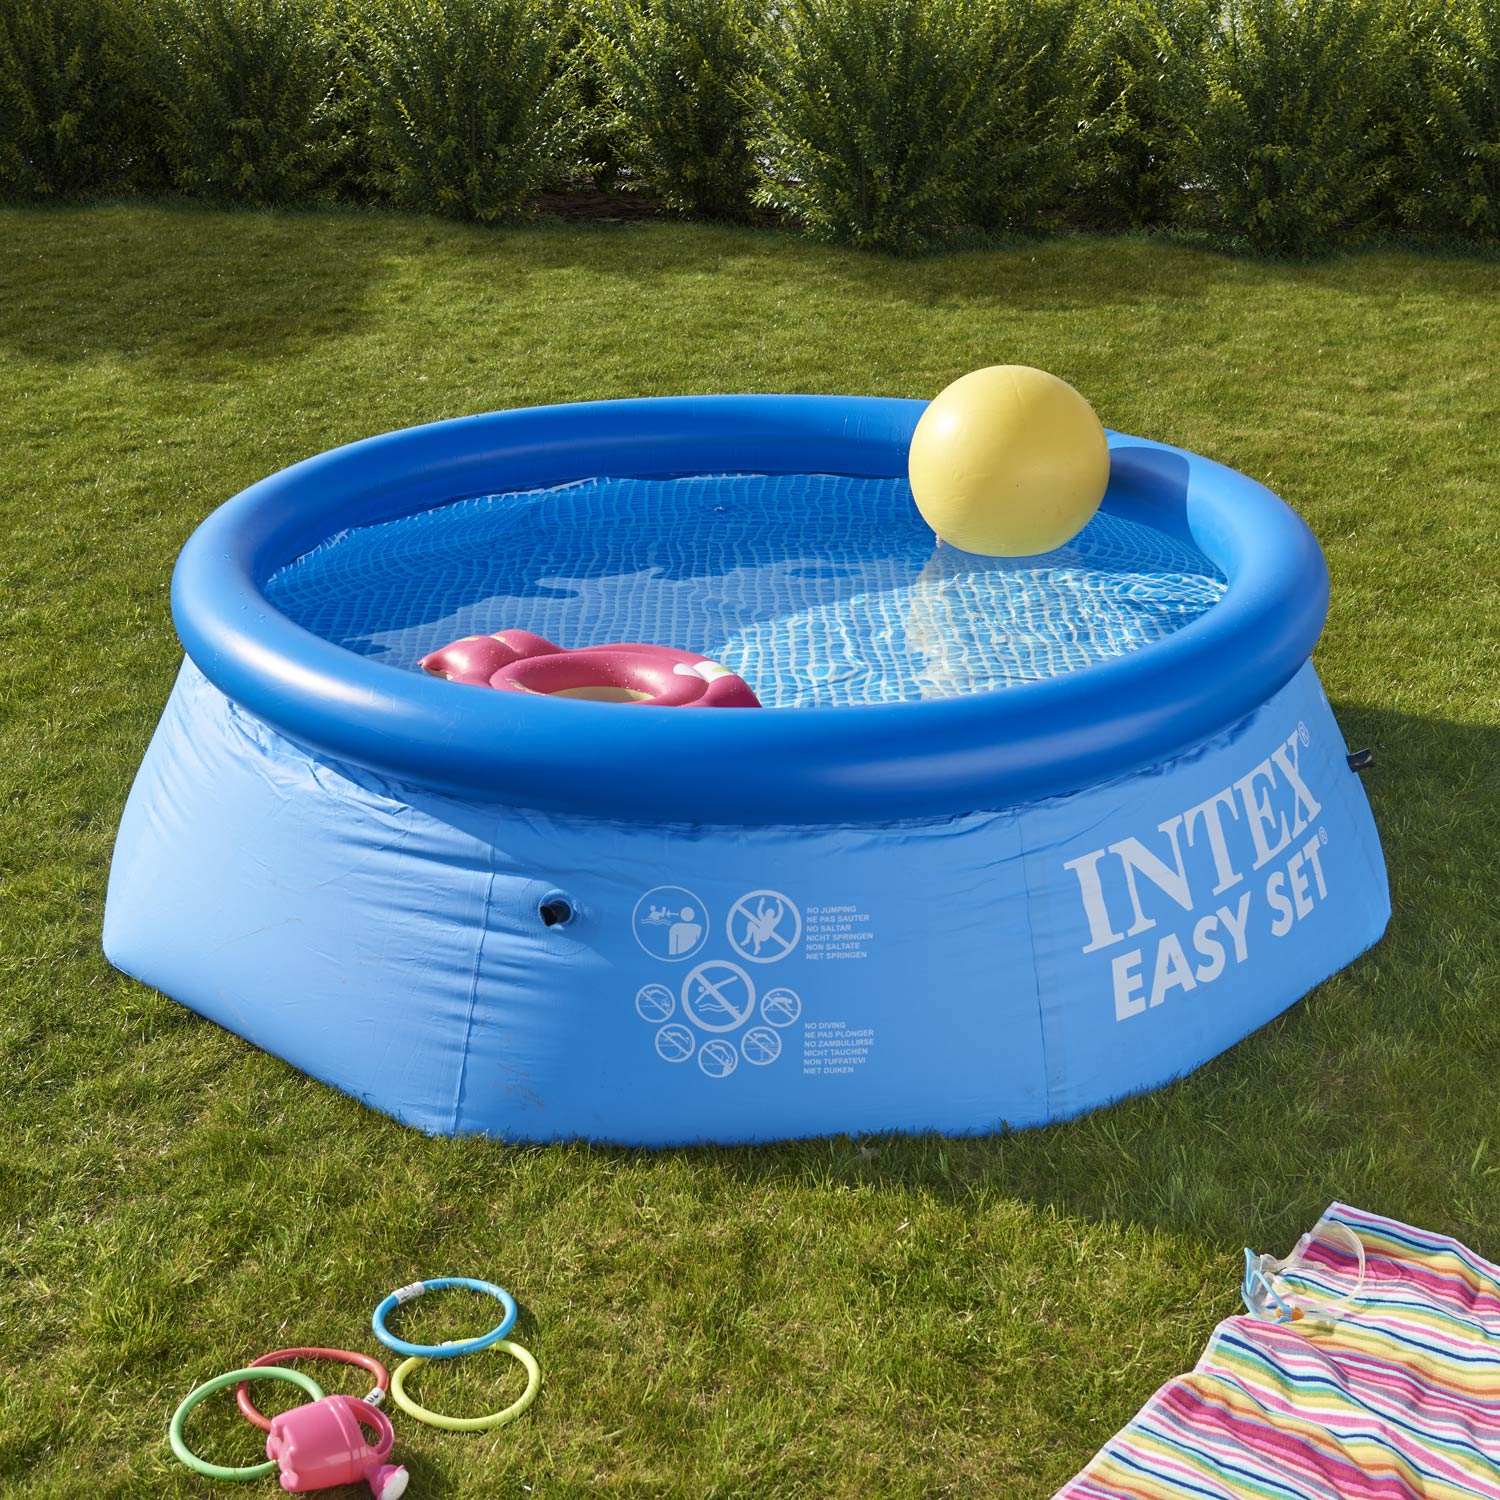 Piscine hors sol autoportante gonflable easy set intex for Petite piscine gonflable pour bebe